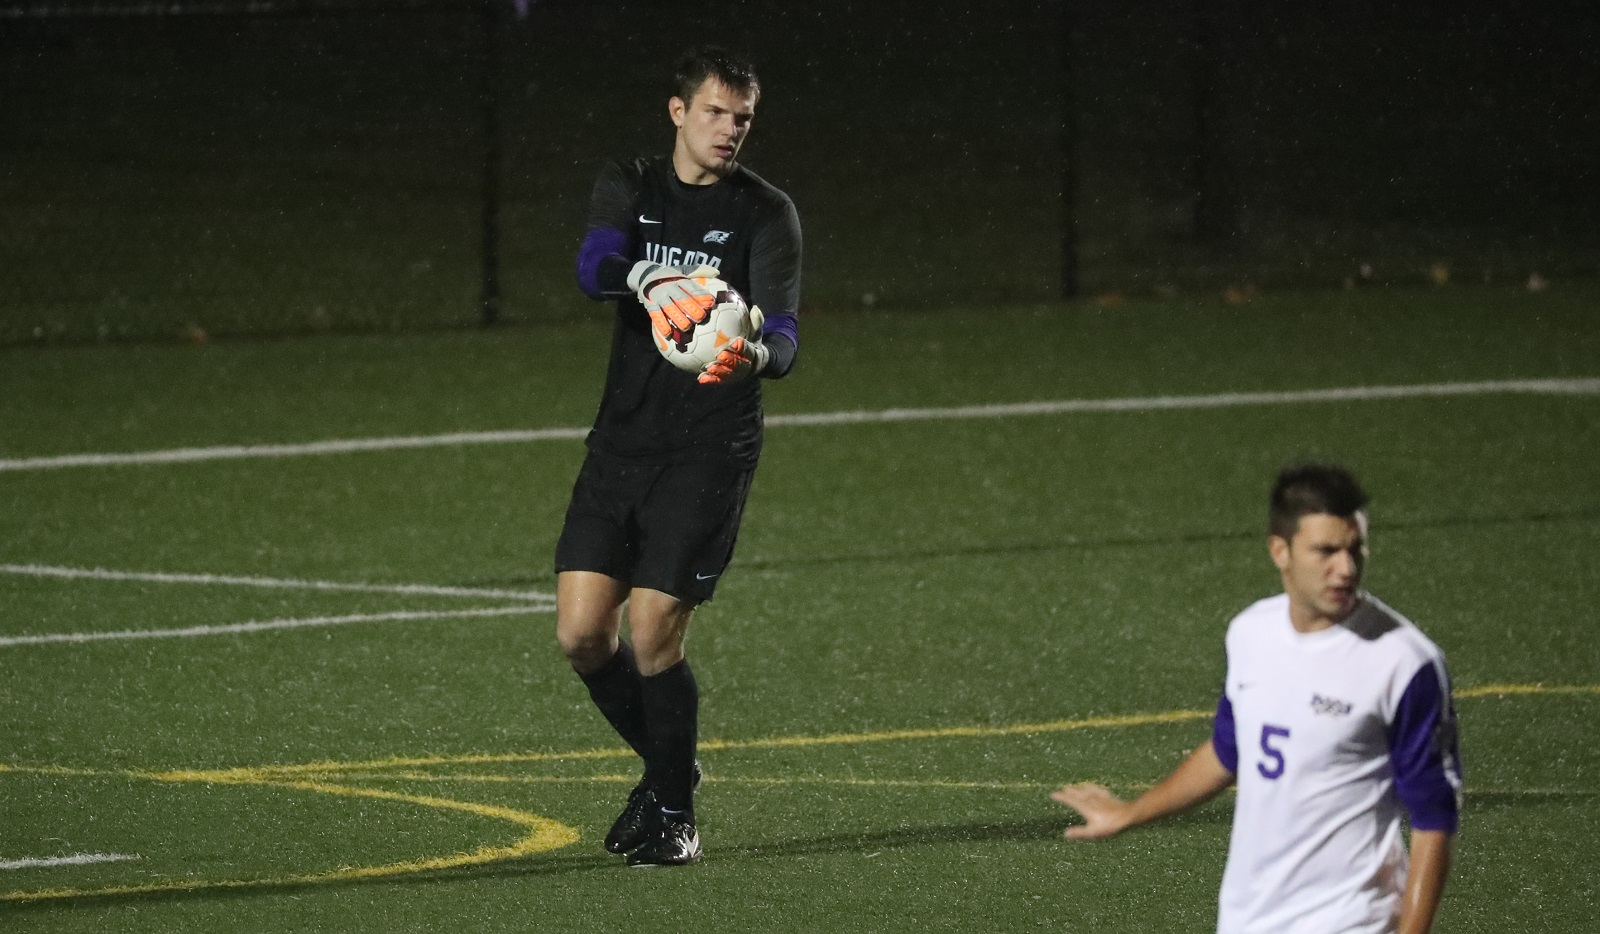 Niagara and FC Buffalo goalkeeper Steve Casey will play for AFC Ann Arbor in the U.S. Open Cup on Wednesday. (Niagara Athletic Communications)